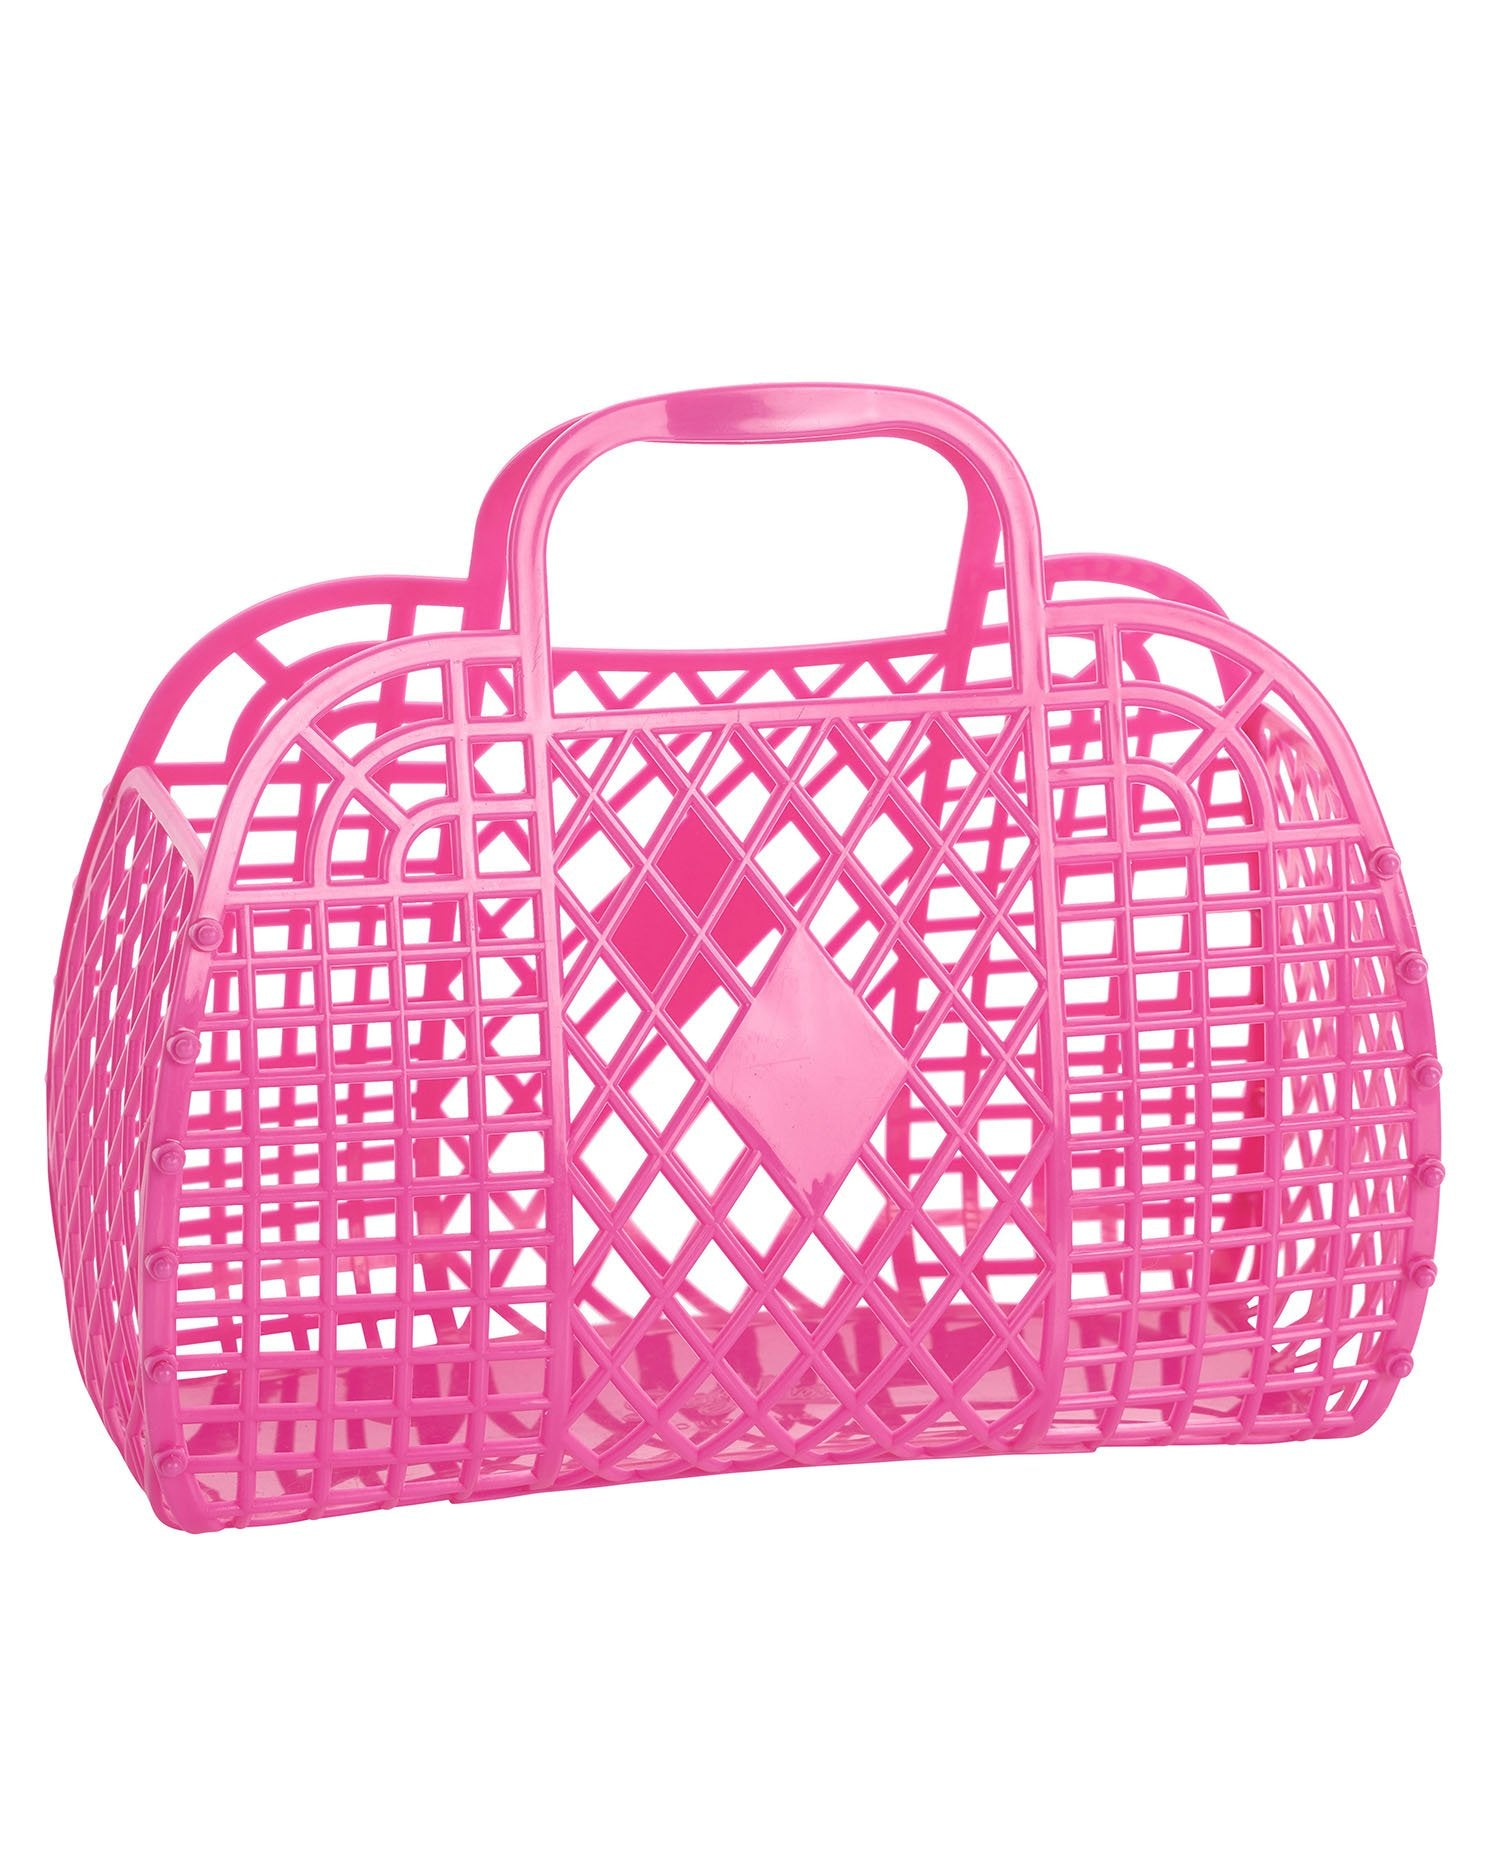 Load image into Gallery viewer, Retro Basket- Large Berry Pink | Sun Jellies - Women's Handbags